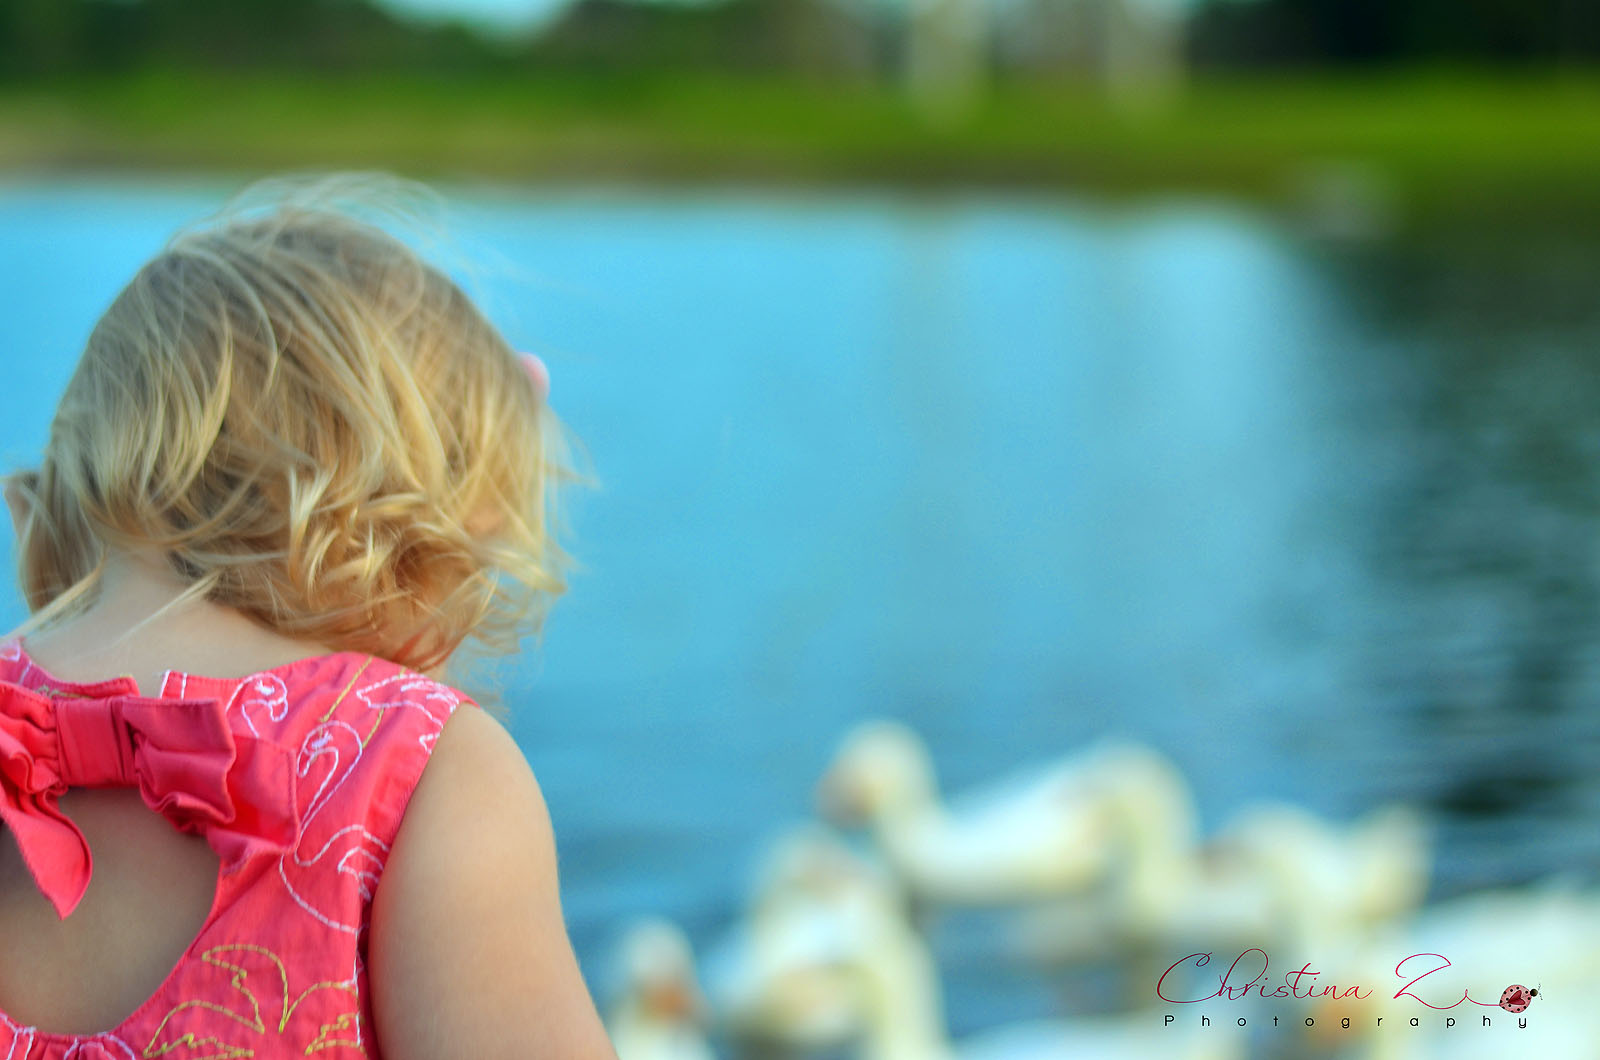 Children Photo | Christina Z Photography - Orlando FL Photographer